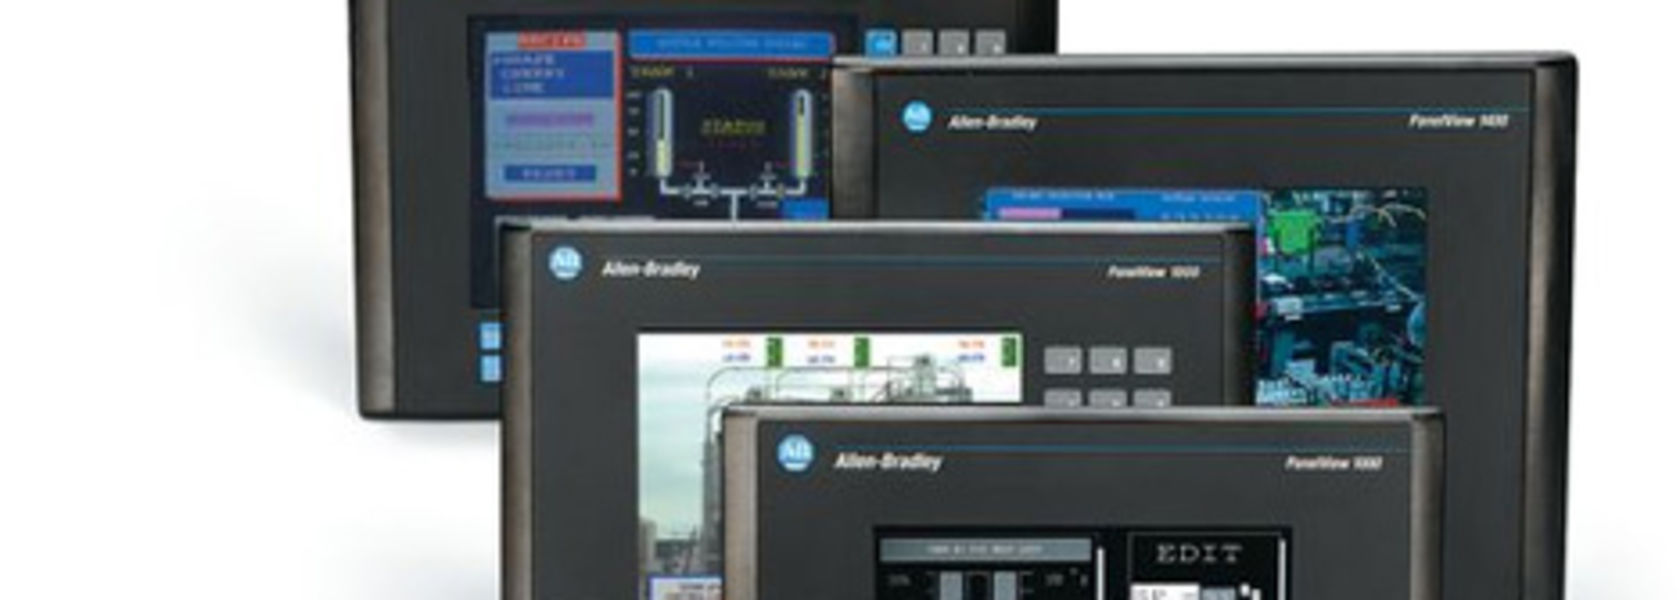 rockwell automation to acquire hiprom mining magazine